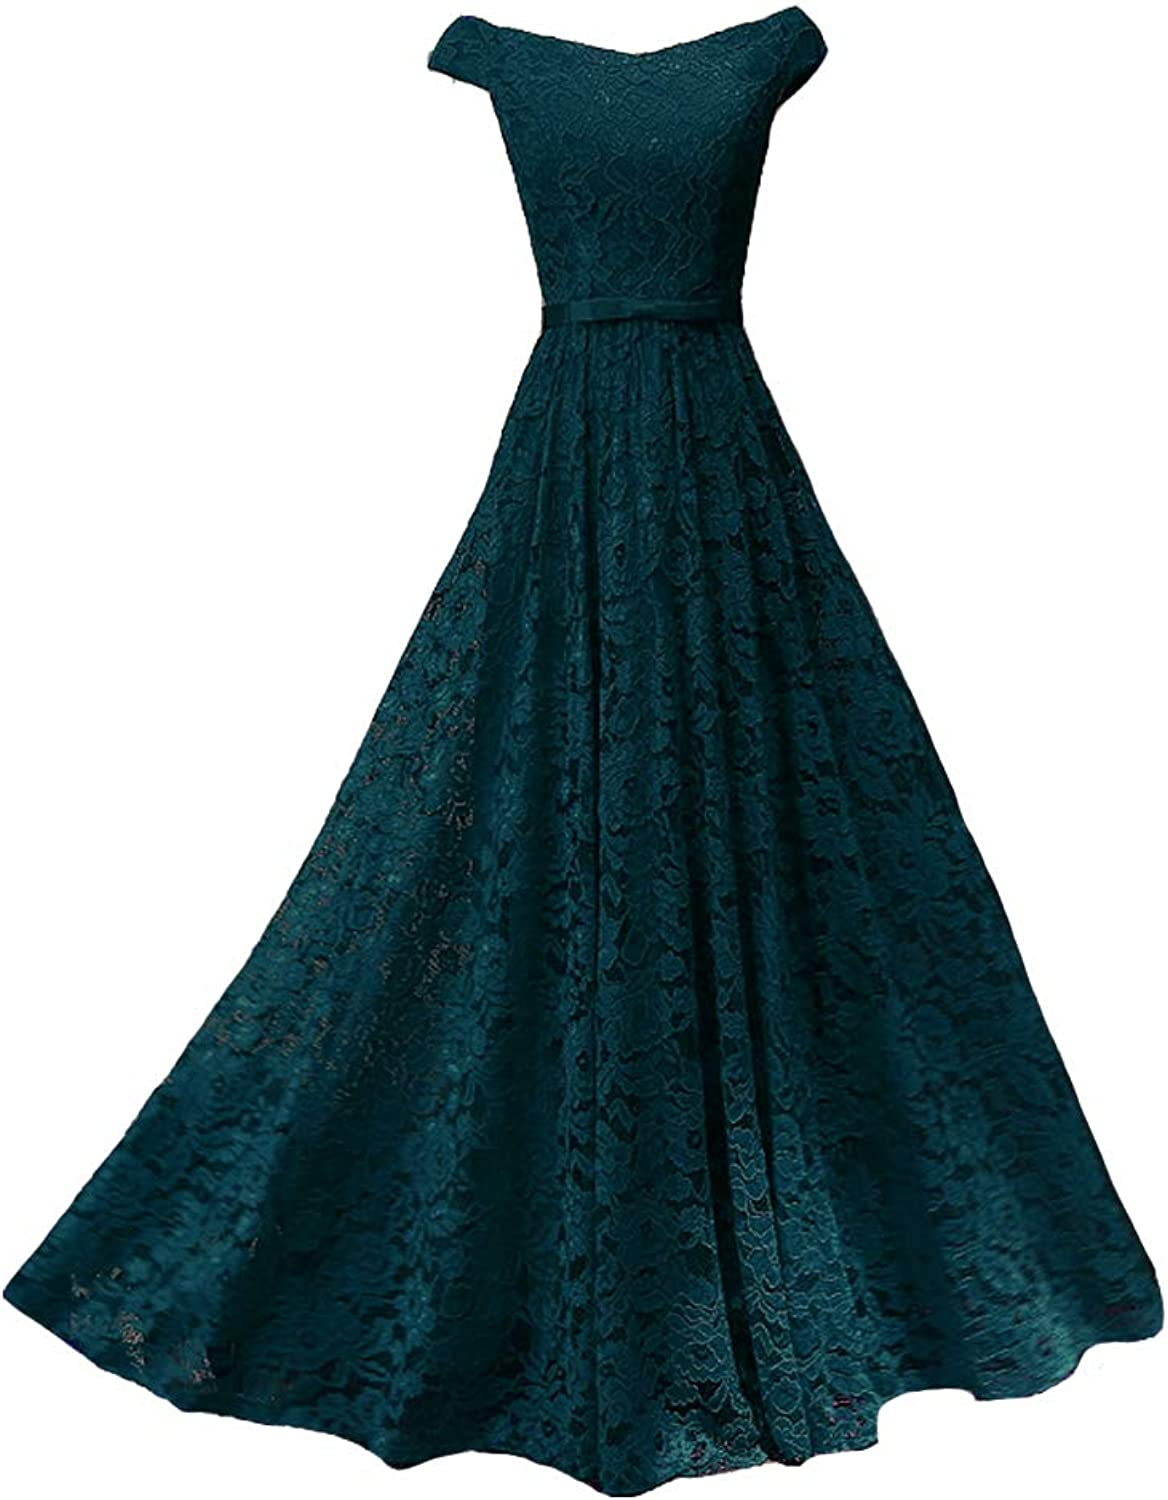 Lemai V Neck Off The Shoulder Lace A Line Long Formal Prom Dresses Evening Gown